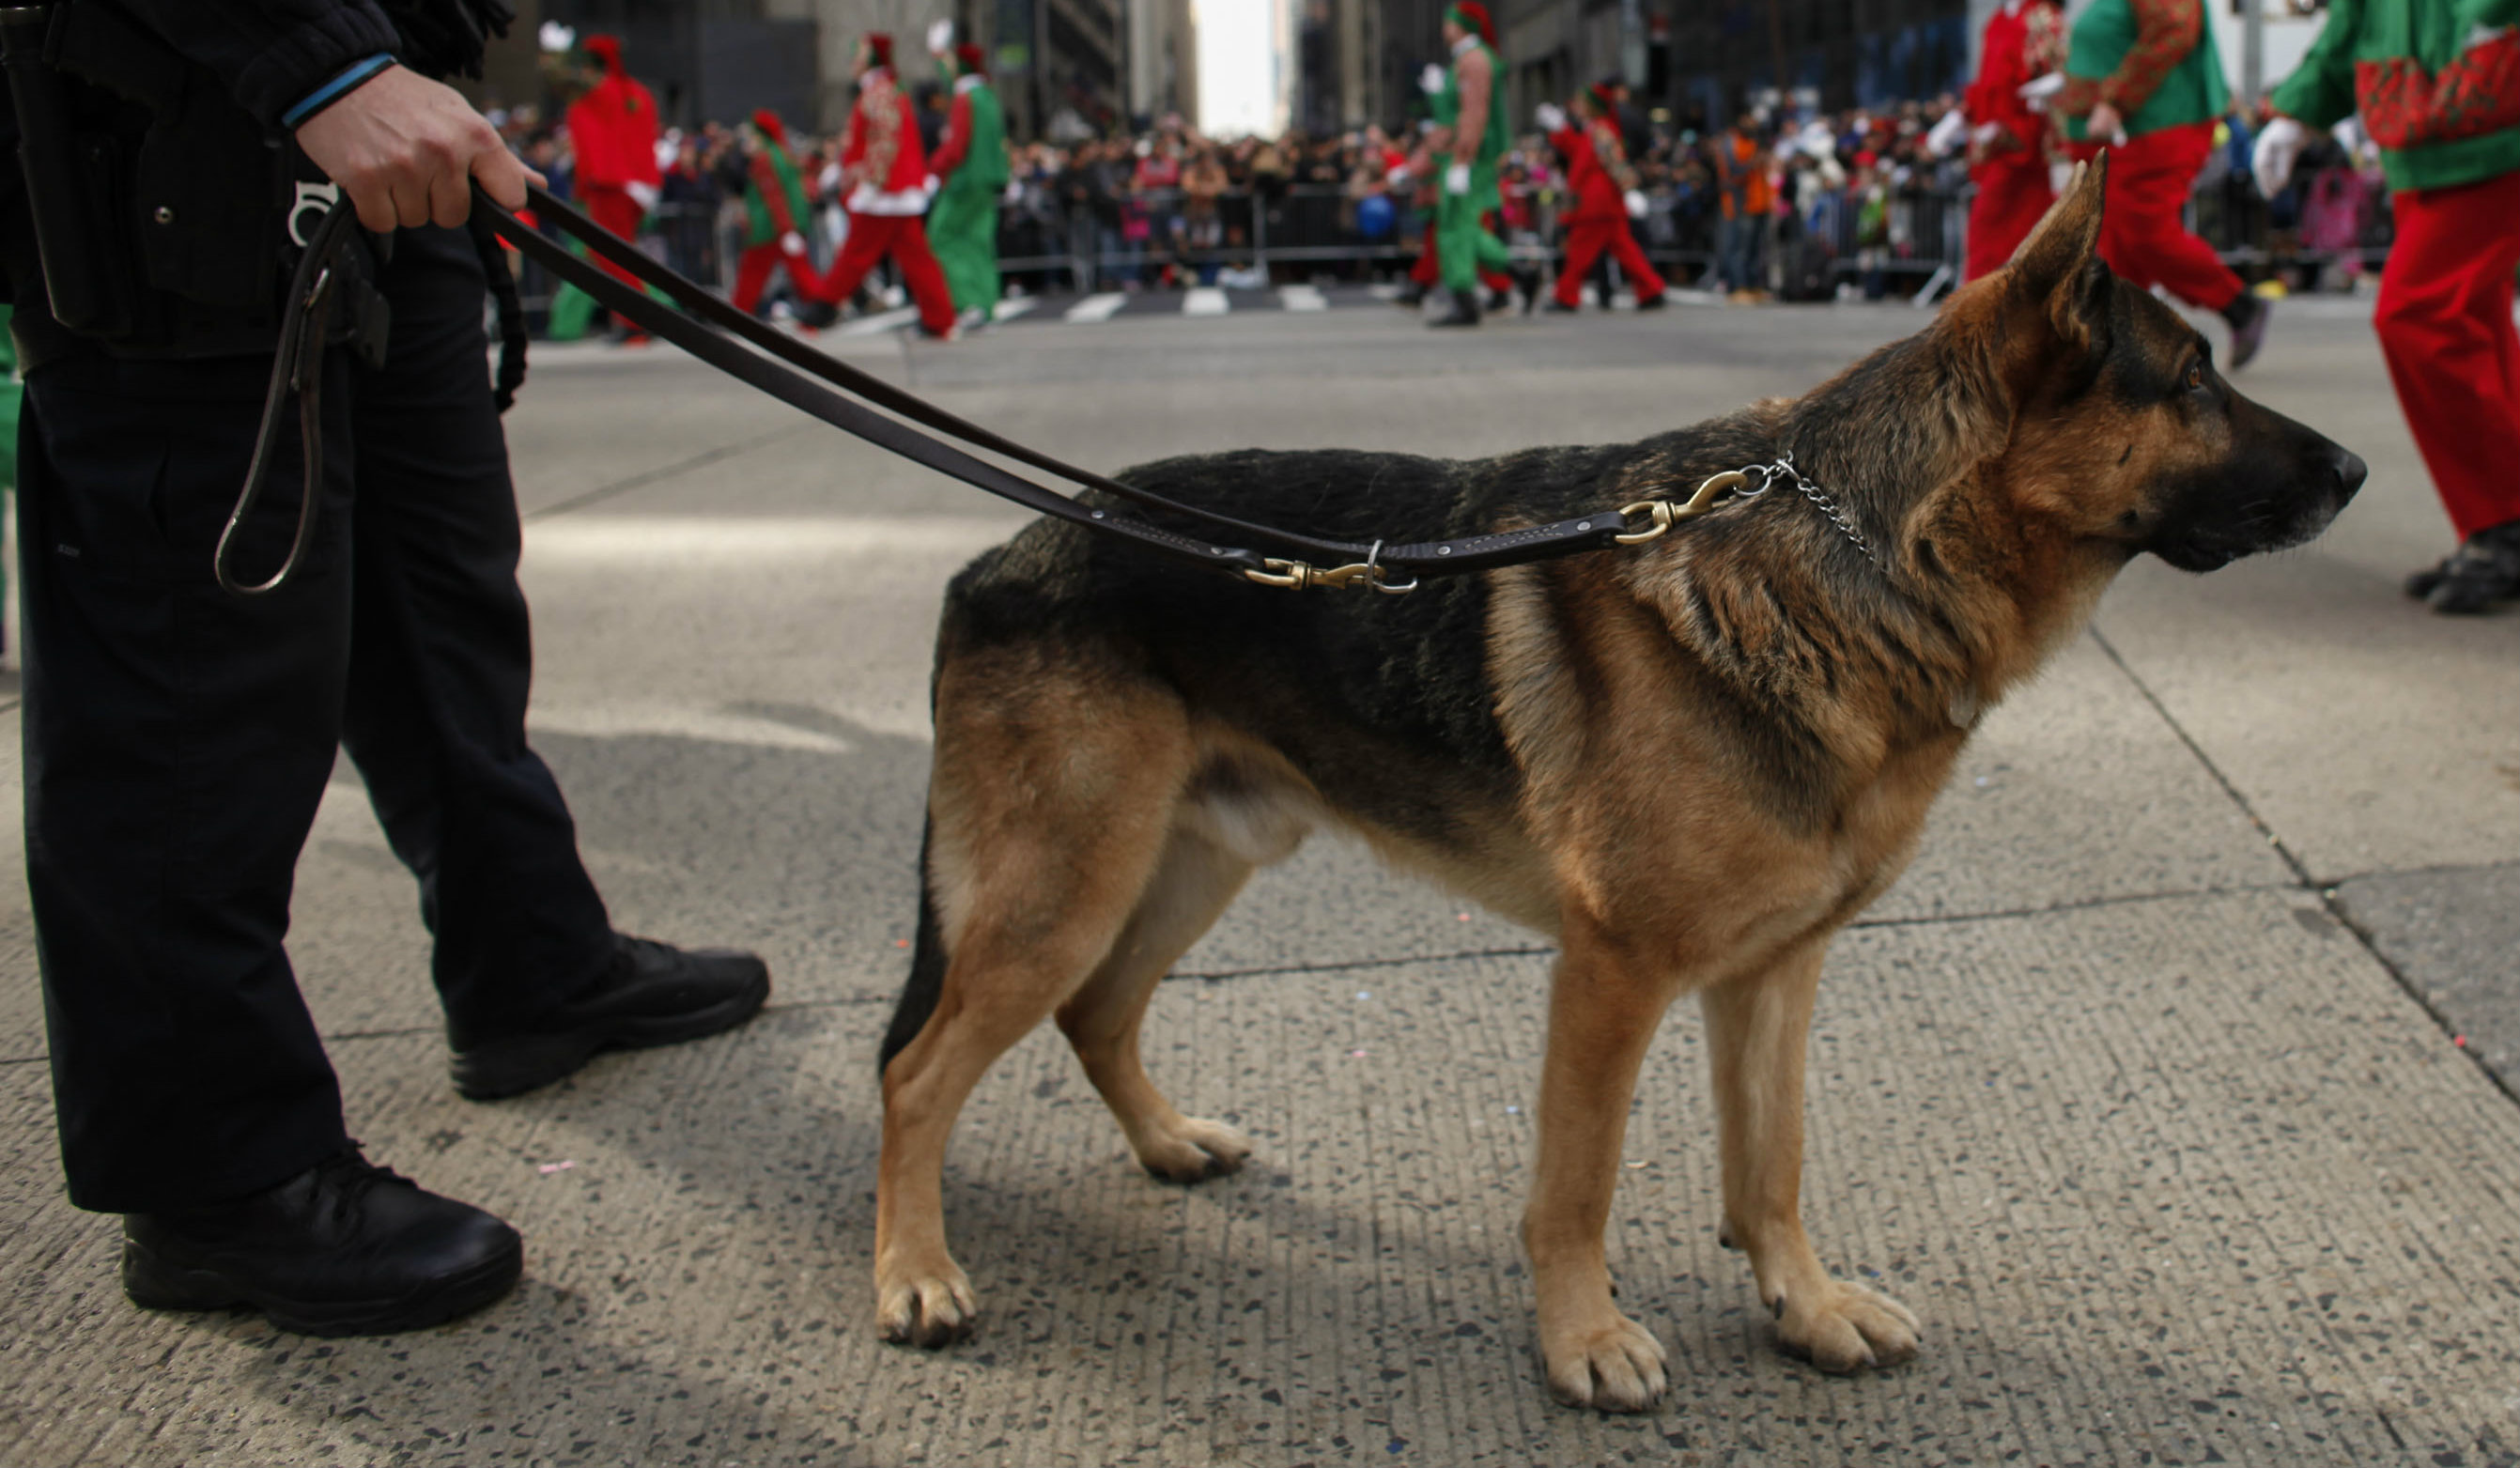 Police Dog With Cancer Joins Clinical Trial